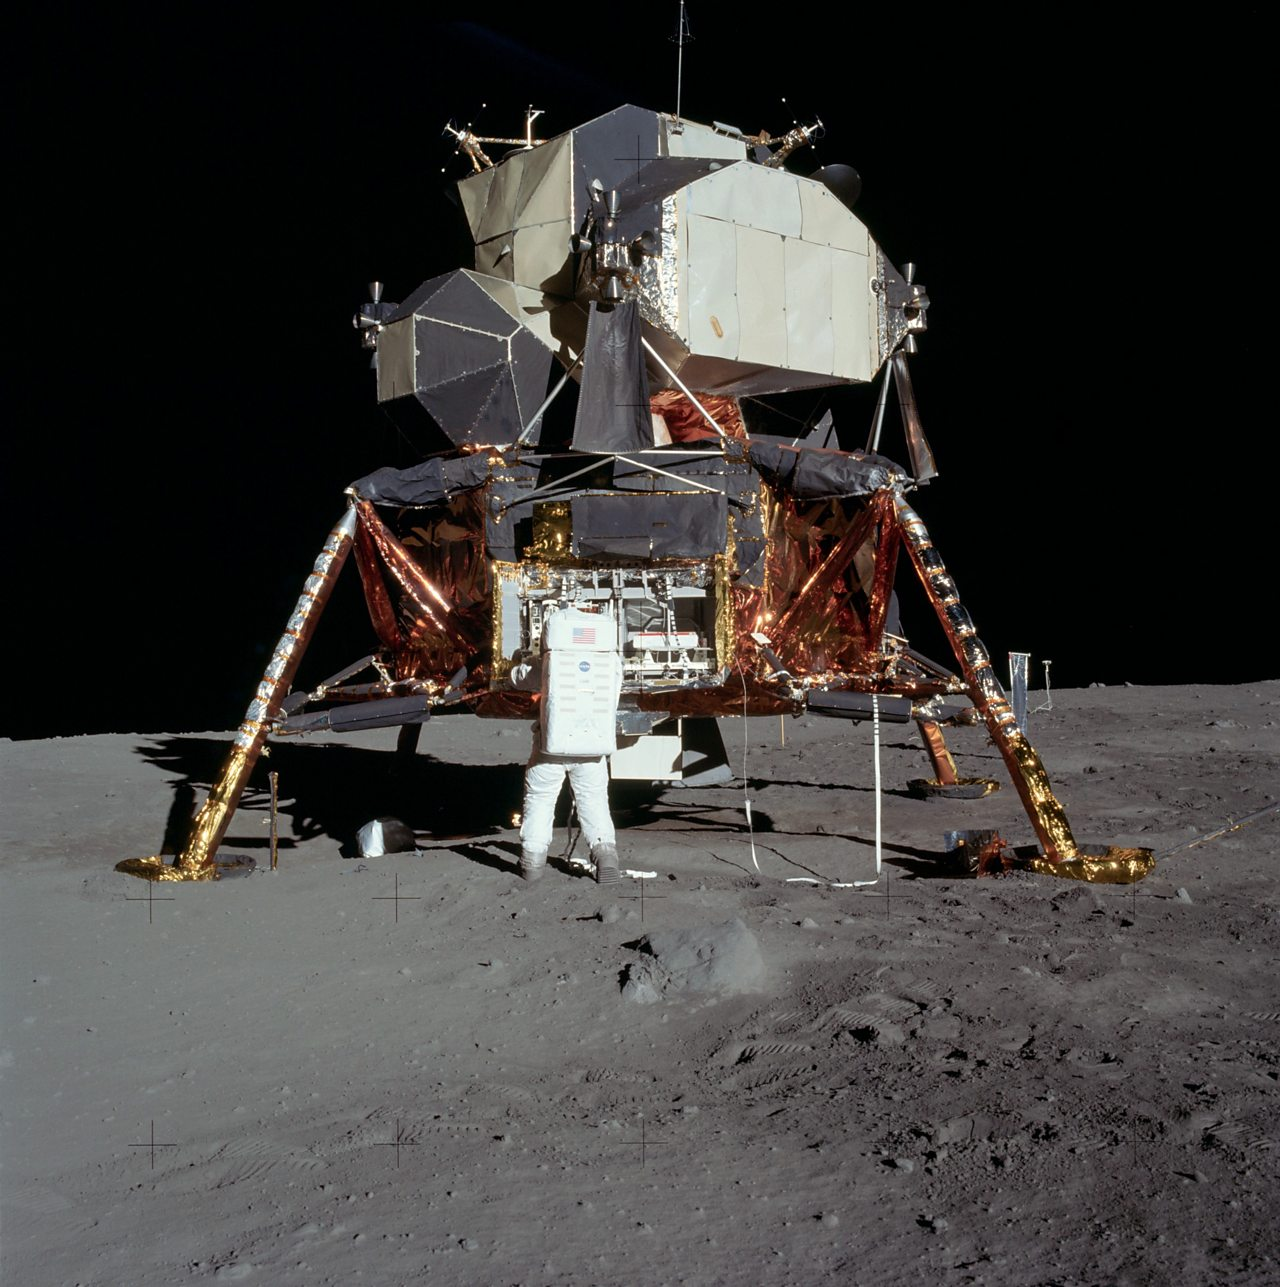 The lunar module on the surface of the moon